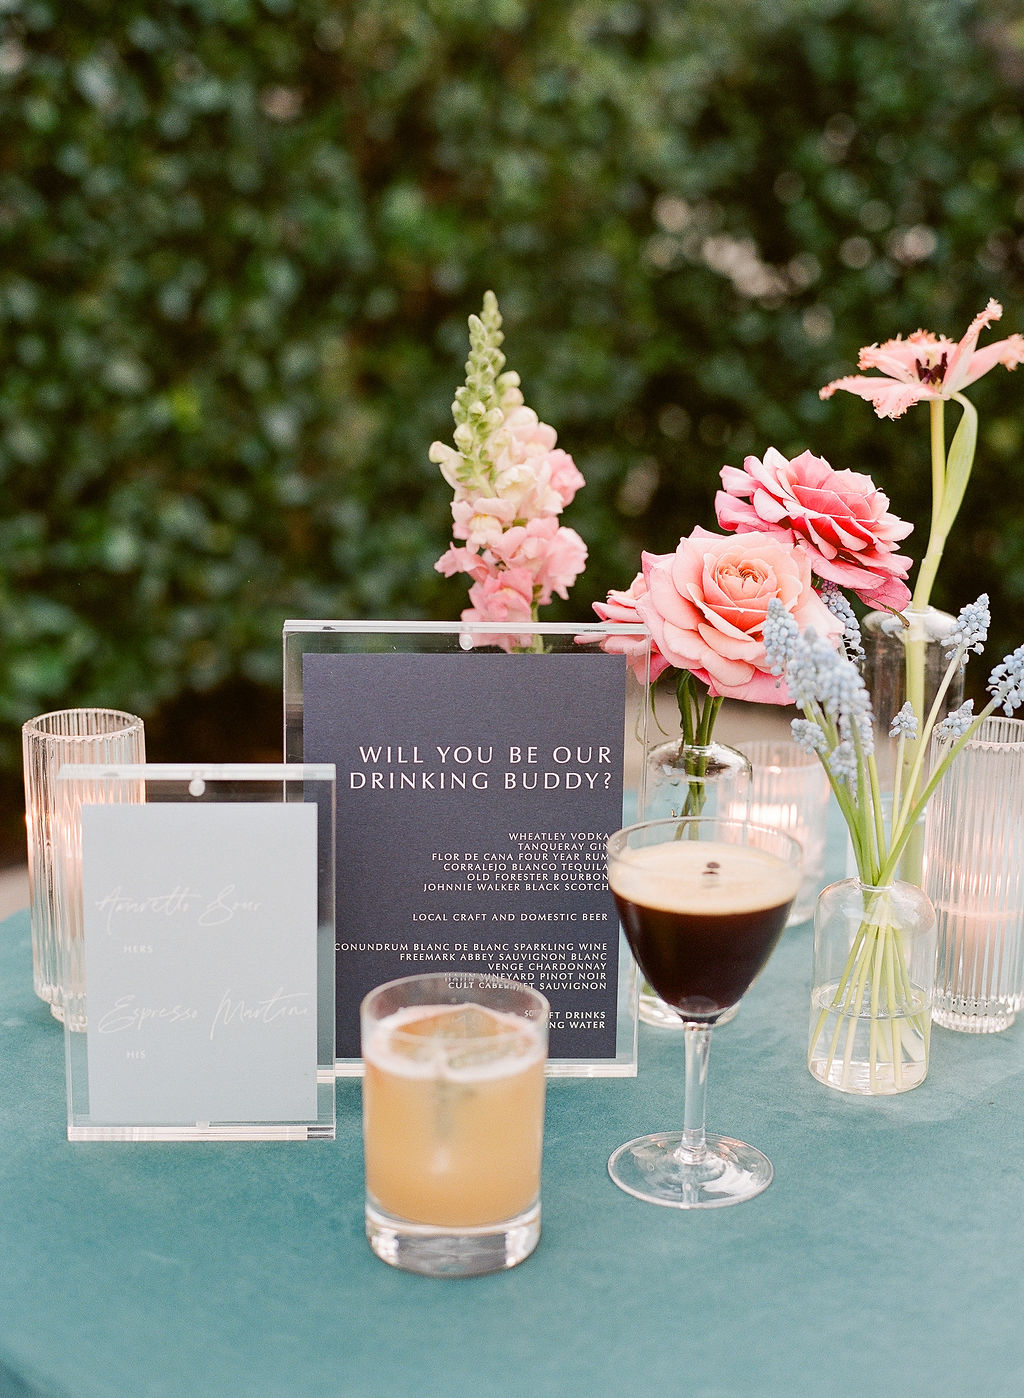 wedding cocktails on table with flowers and sign